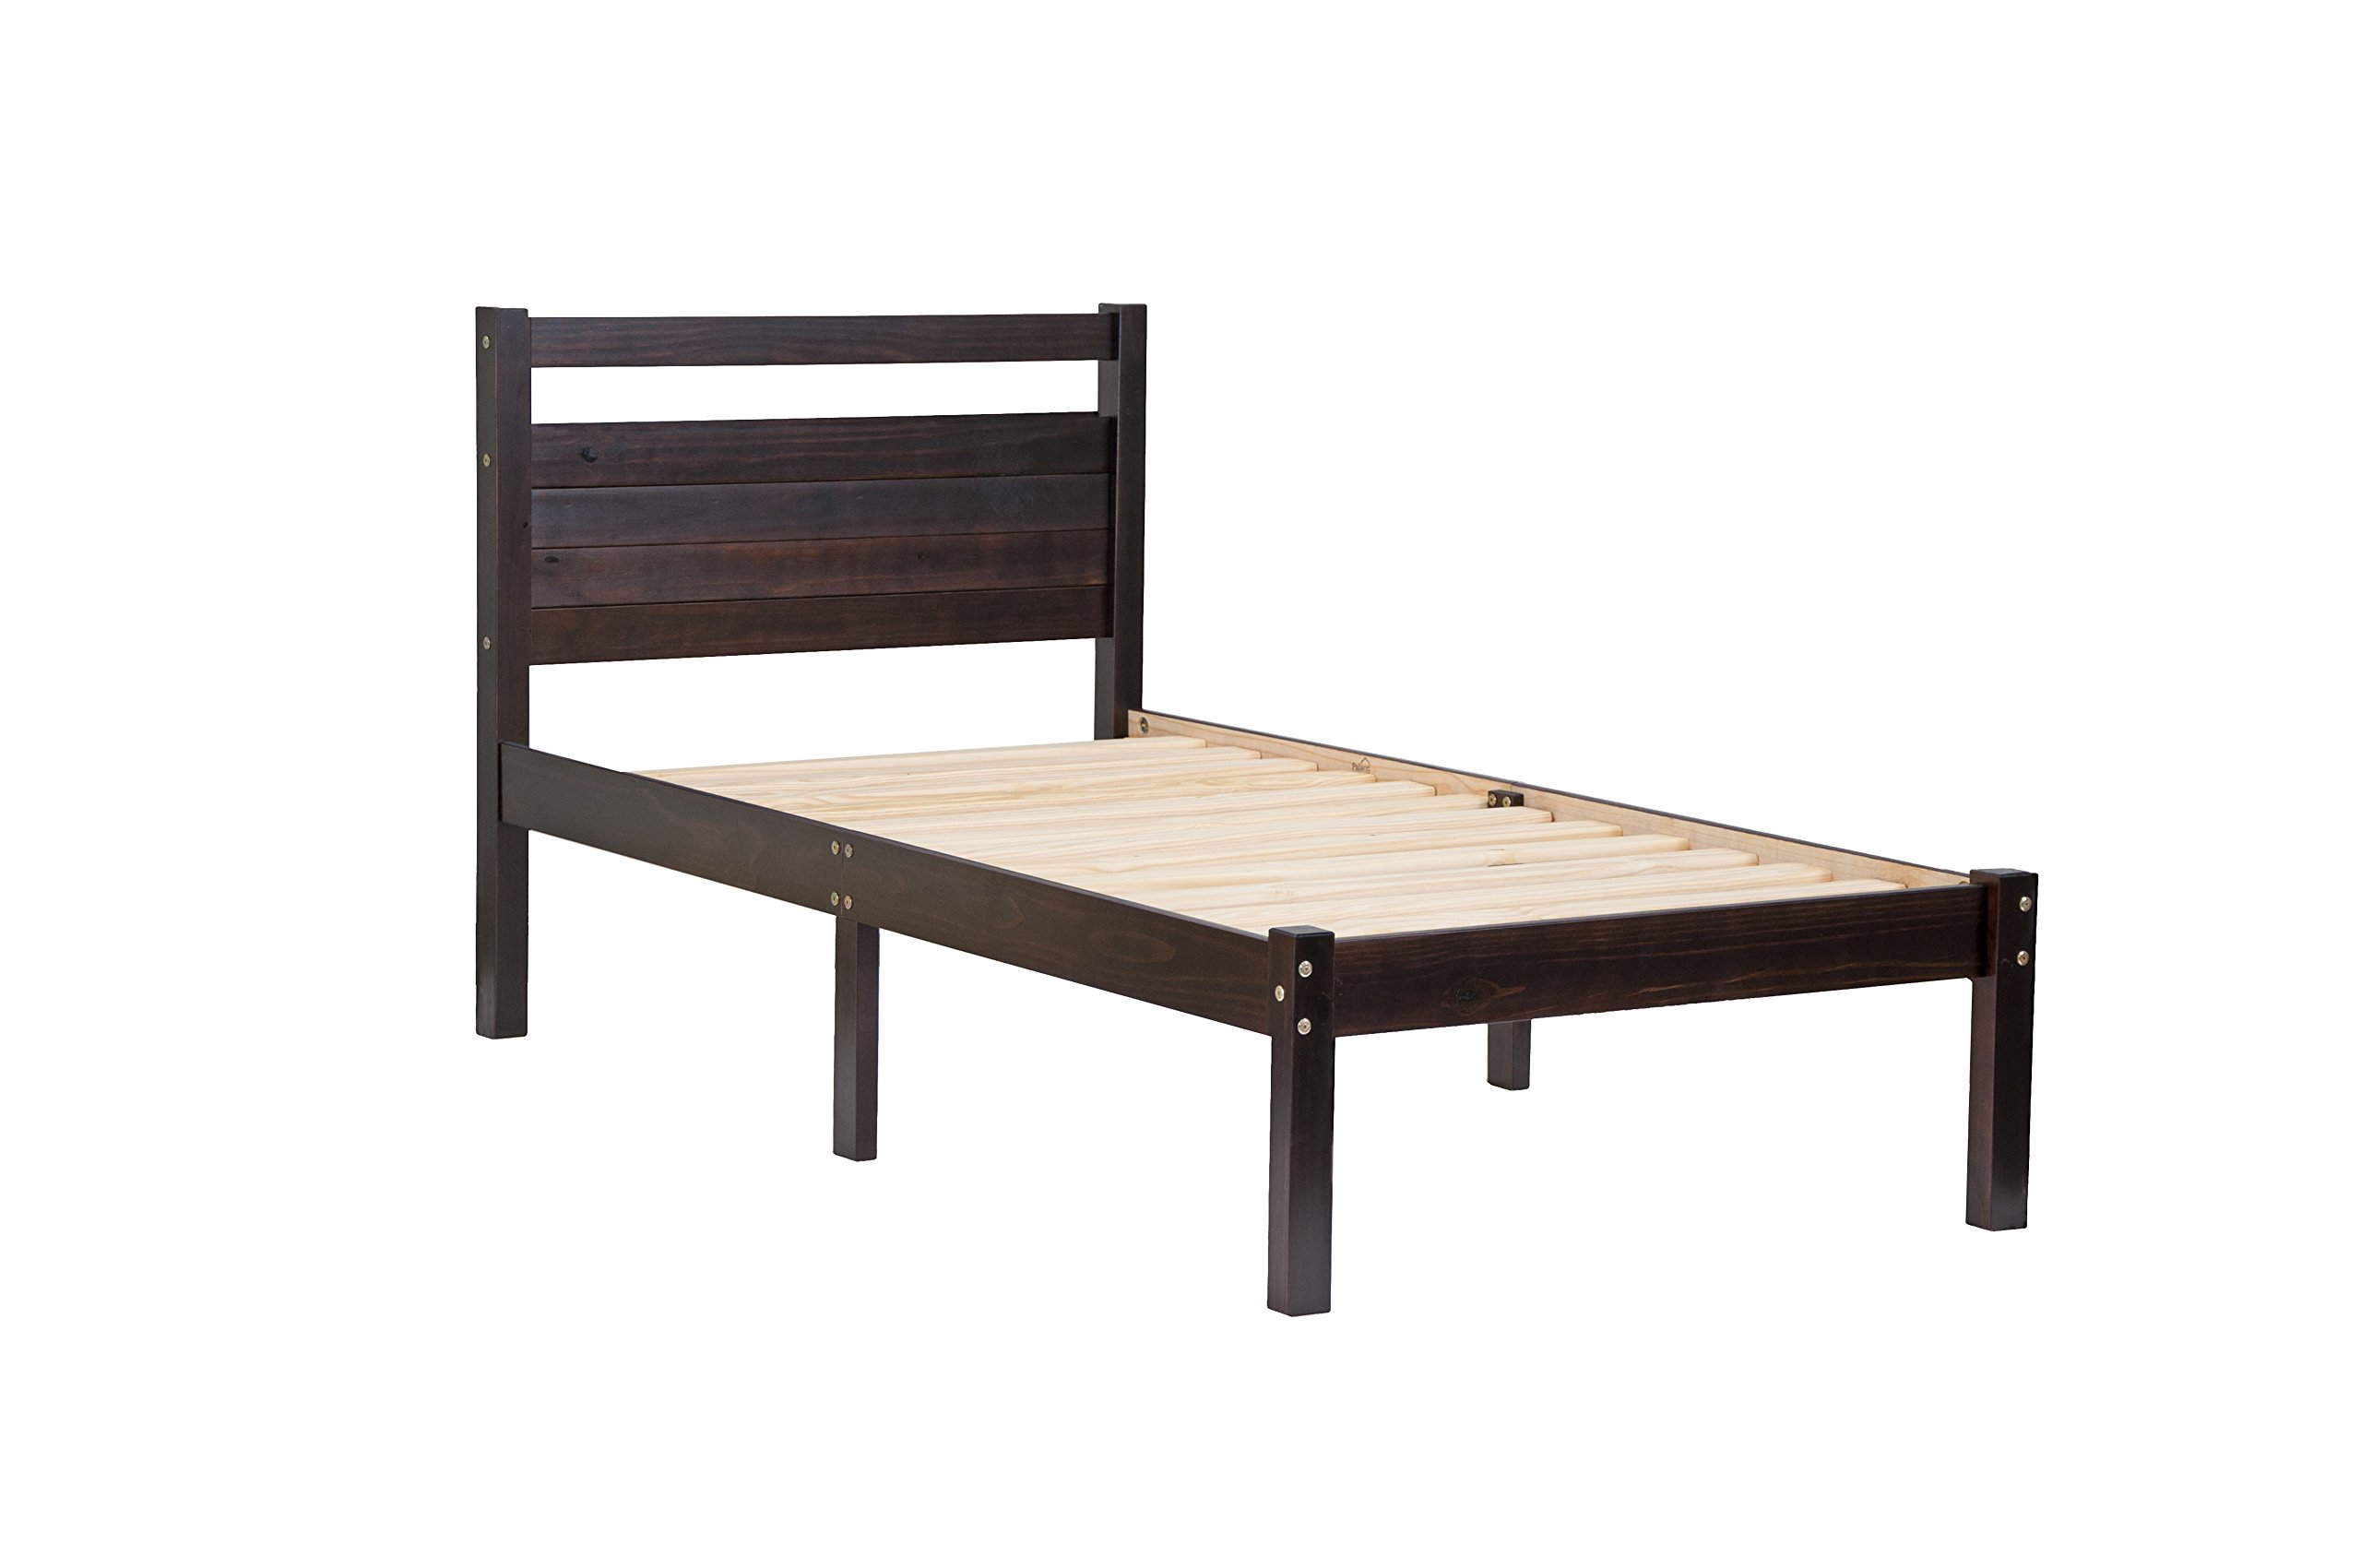 "100% Solid Wood Bronx Twin Bed-in-a-Box by Palace Imports, Java Color, 41.5""W x 39.5""H x 79""L, 12 Slats Included… -  - bedroom-furniture, bedroom, bed-frames - 71 Q8Xq vLL -"